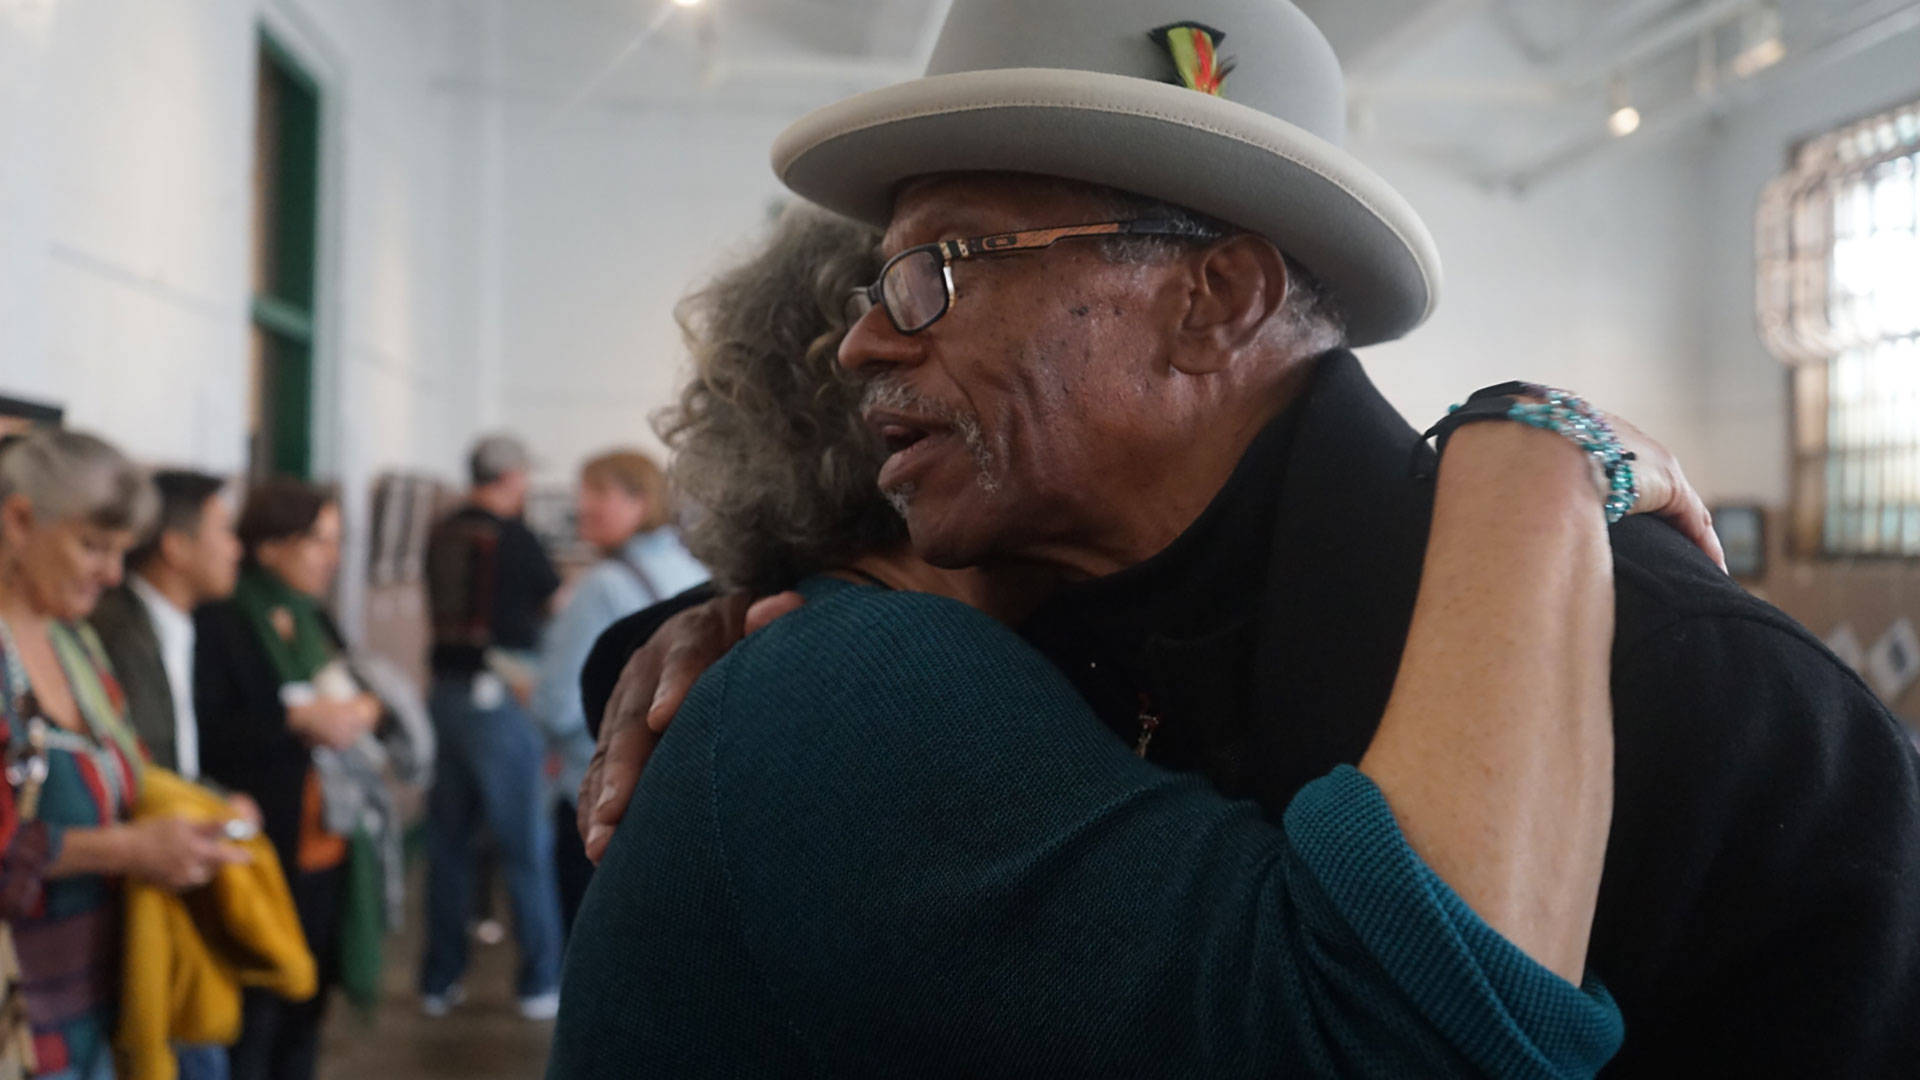 Watani Stiner visits Alcatraz State Prison in August. While incarcerated at San Quentin, Stiner took part in Brothers in Pens, a writing and art program. Pendarvis Harshaw